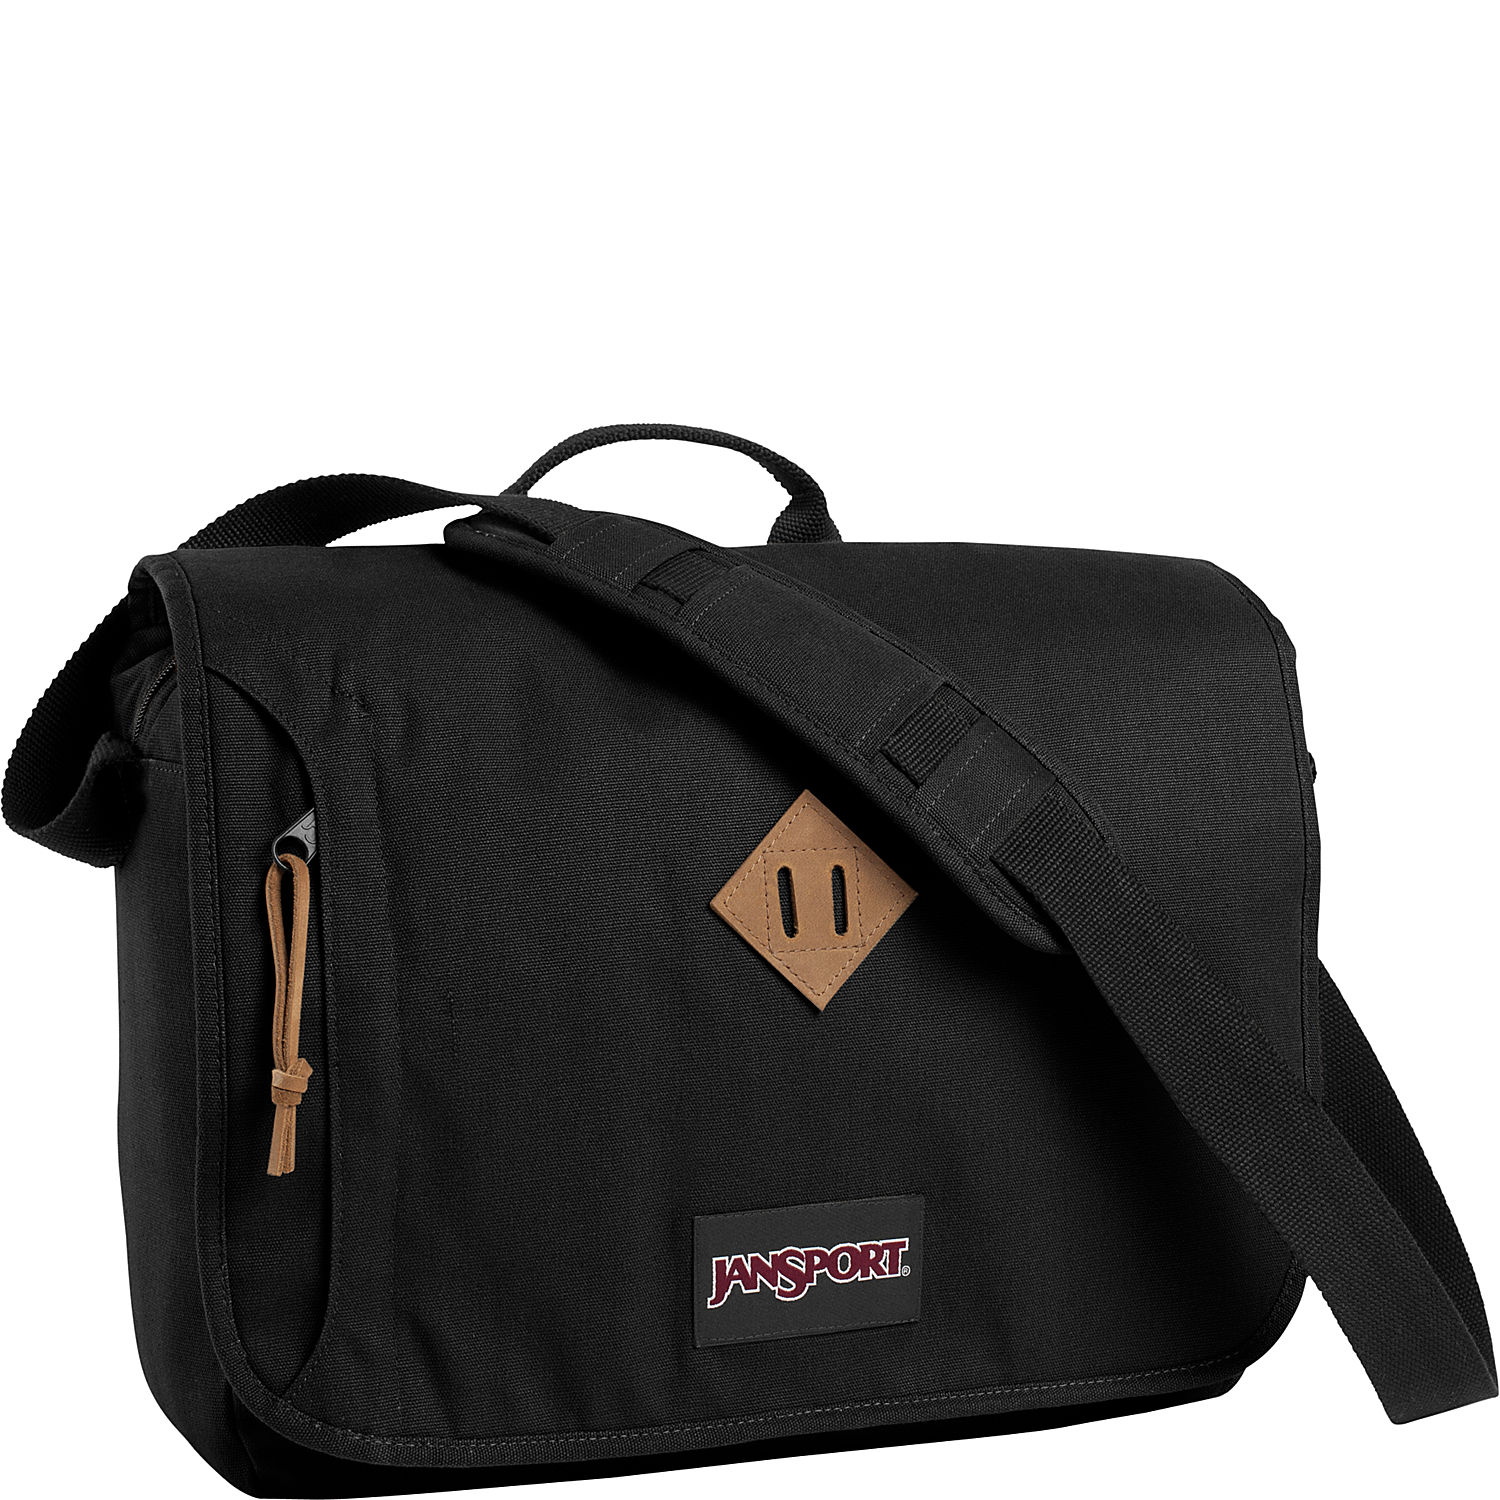 Jansport Cross Shoulder Bag – Shoulder Travel Bag